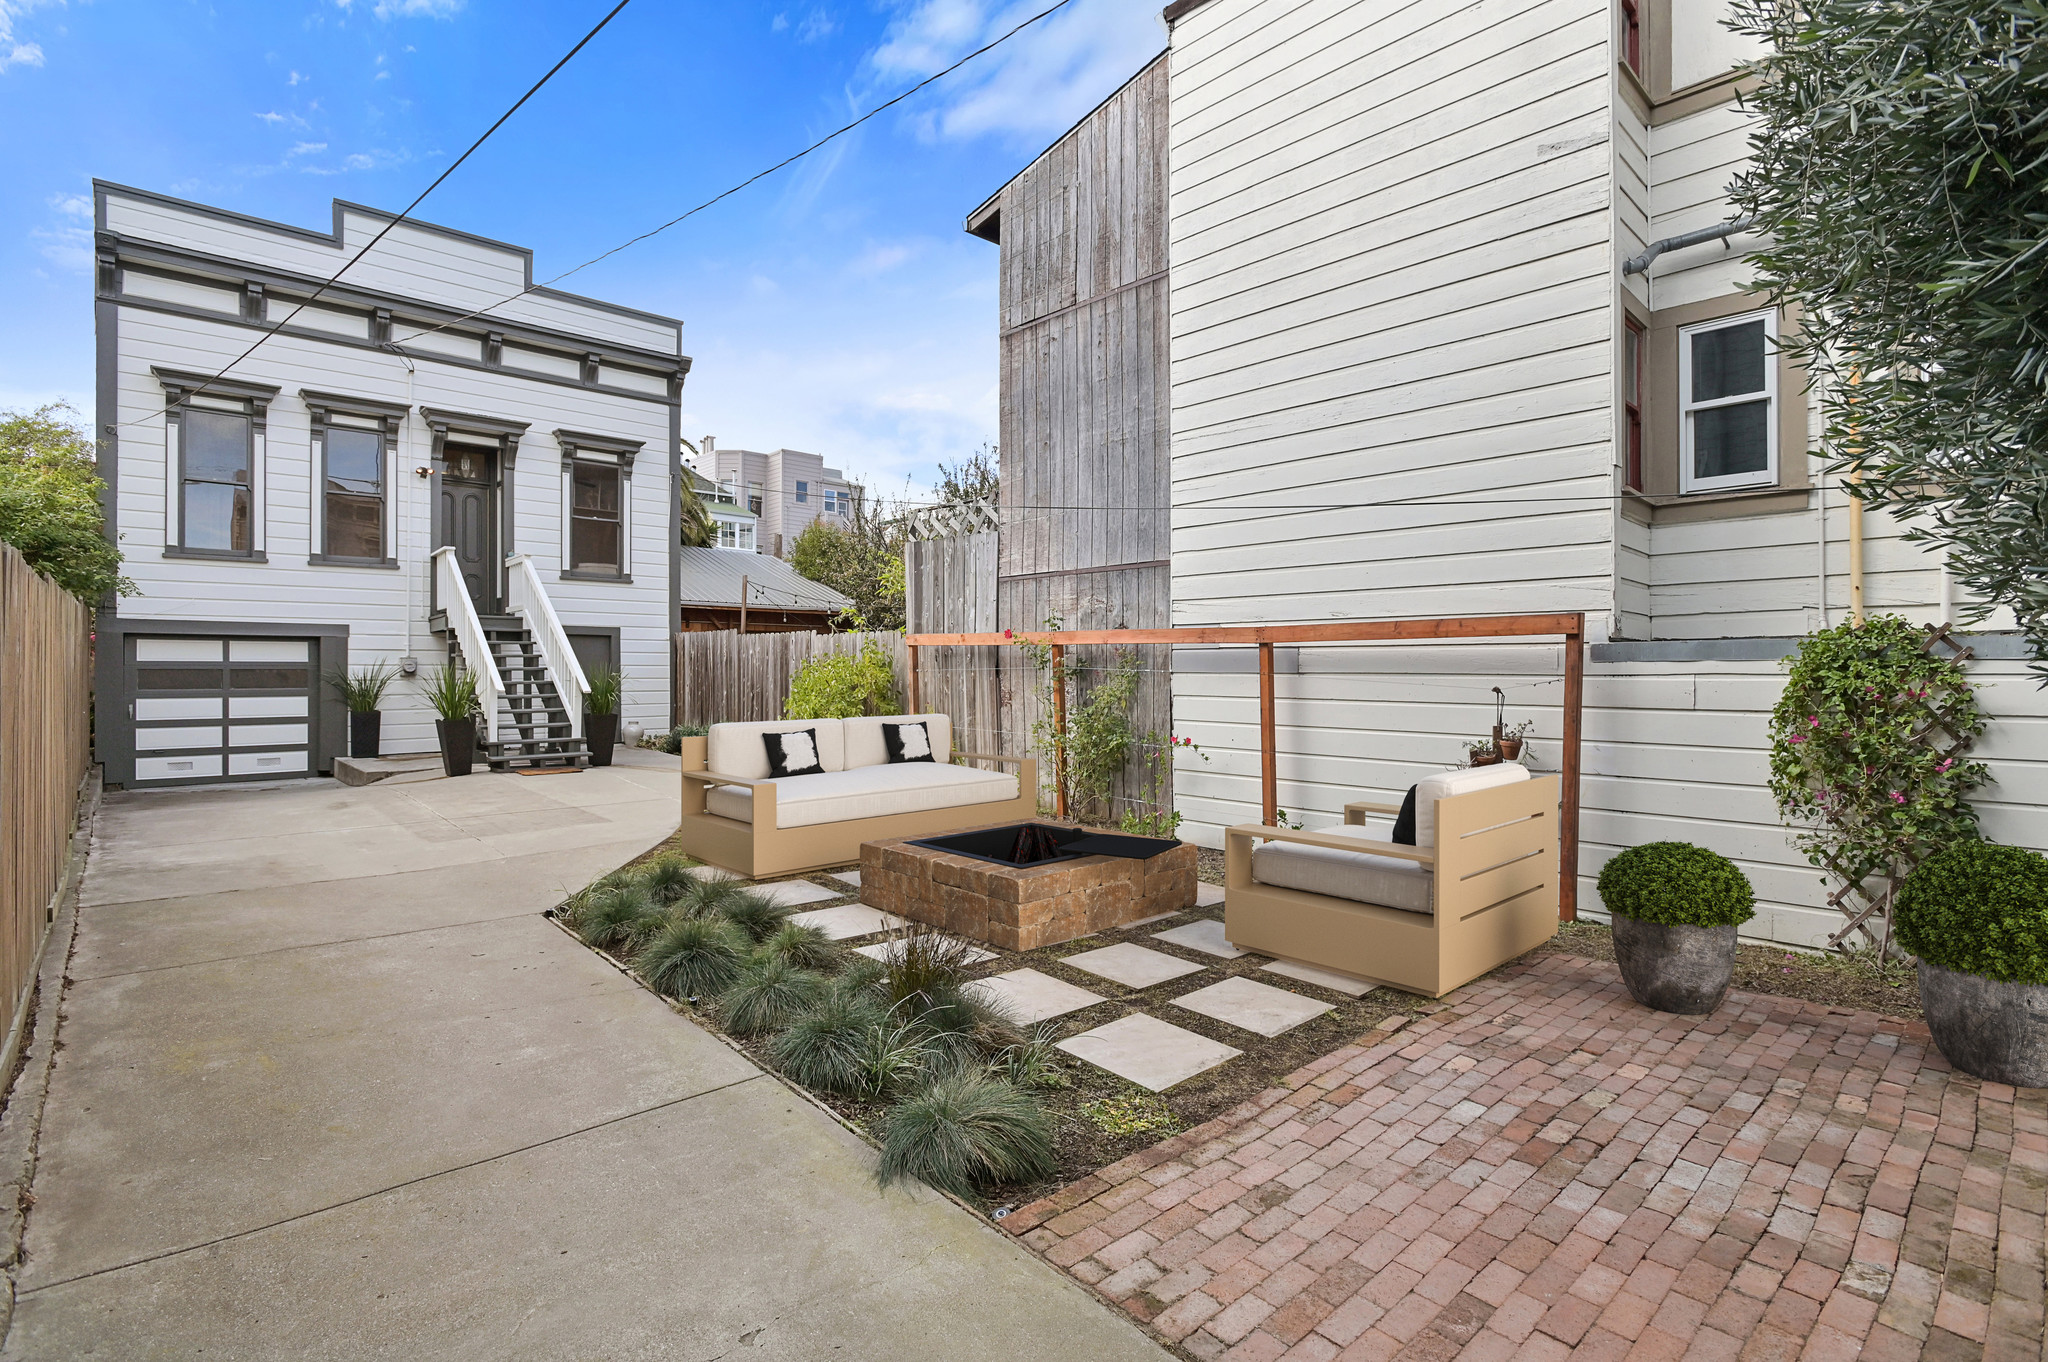 2-Bedroom House In Mission District